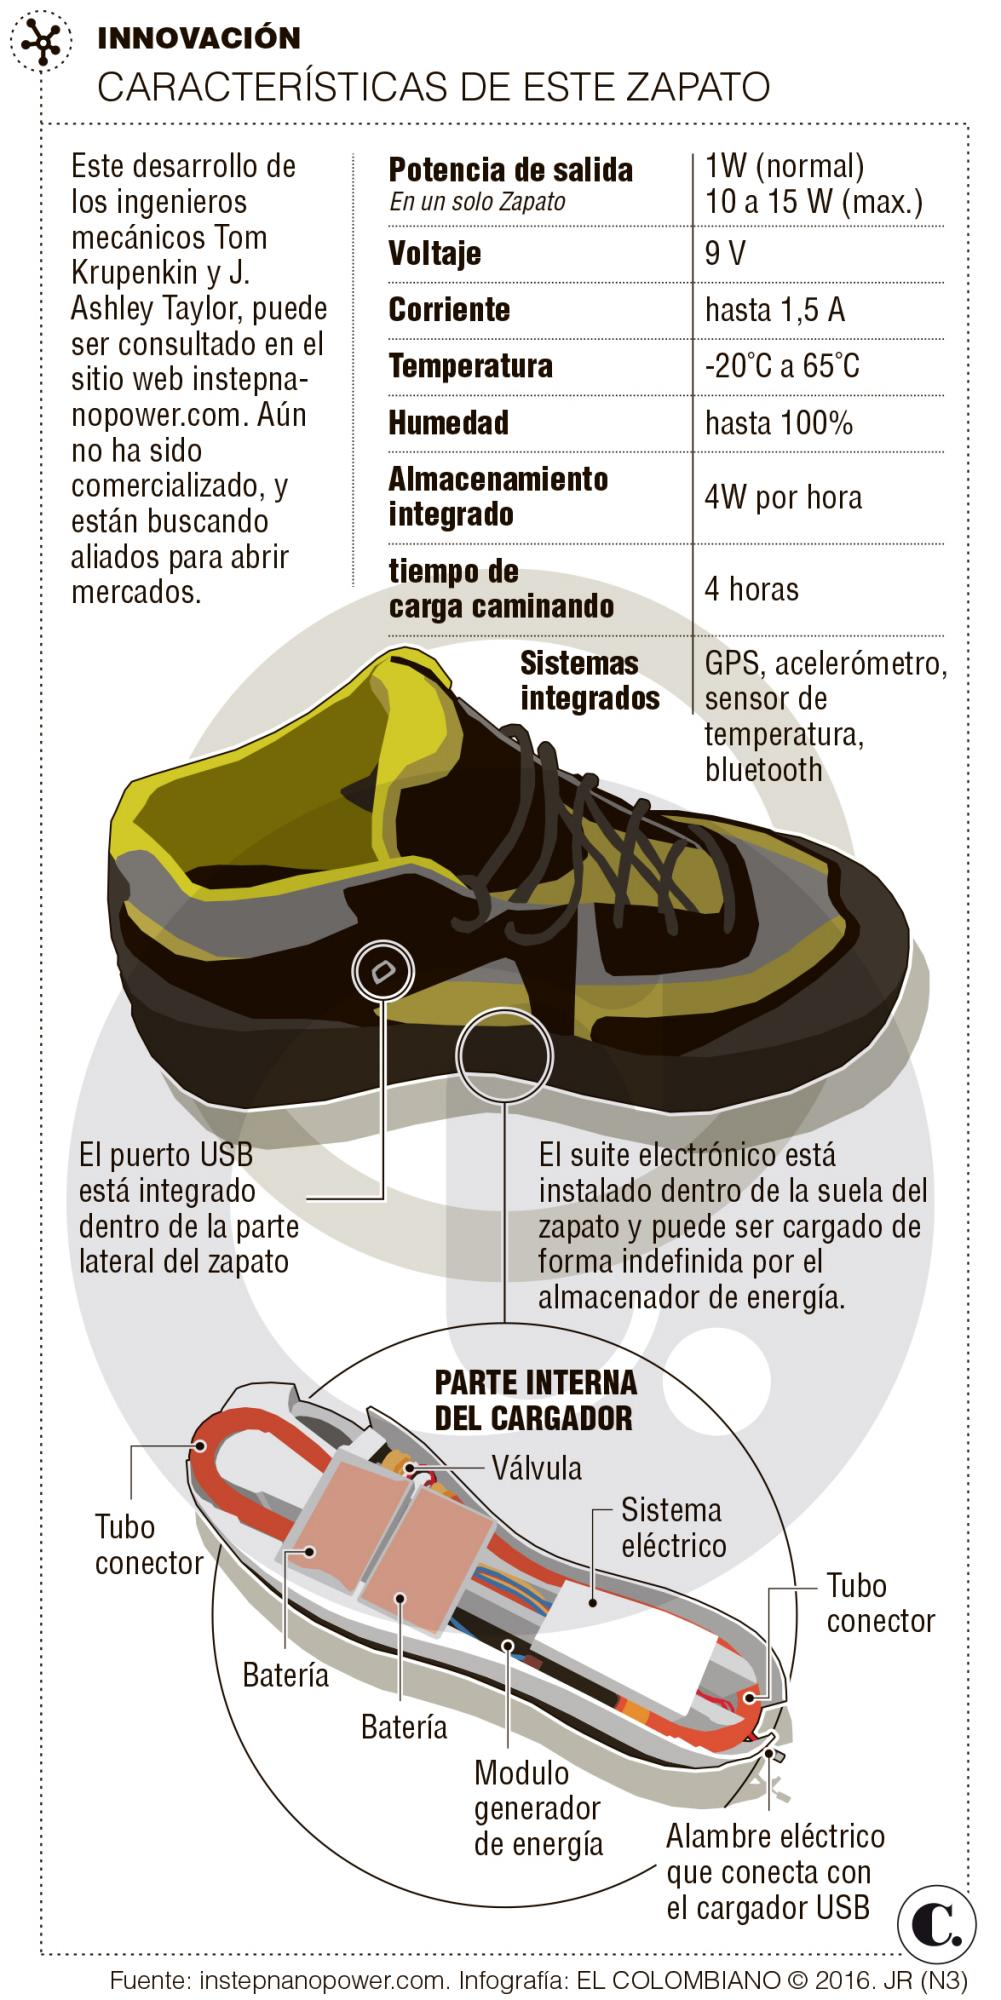 Zapatos con USB que cargan sus dispositivos